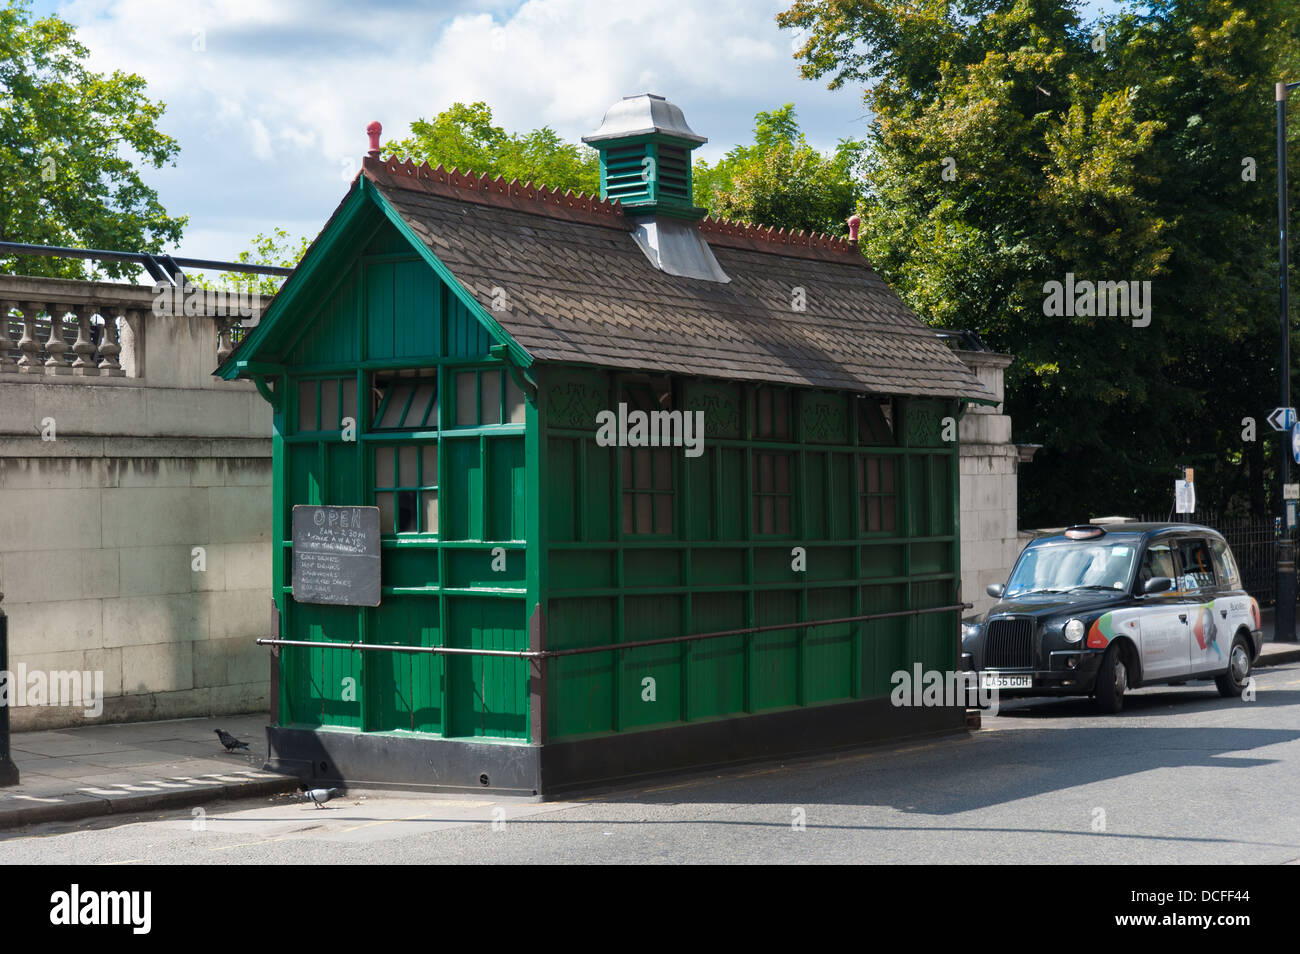 A Cabman's shelter, London. Stock Photo